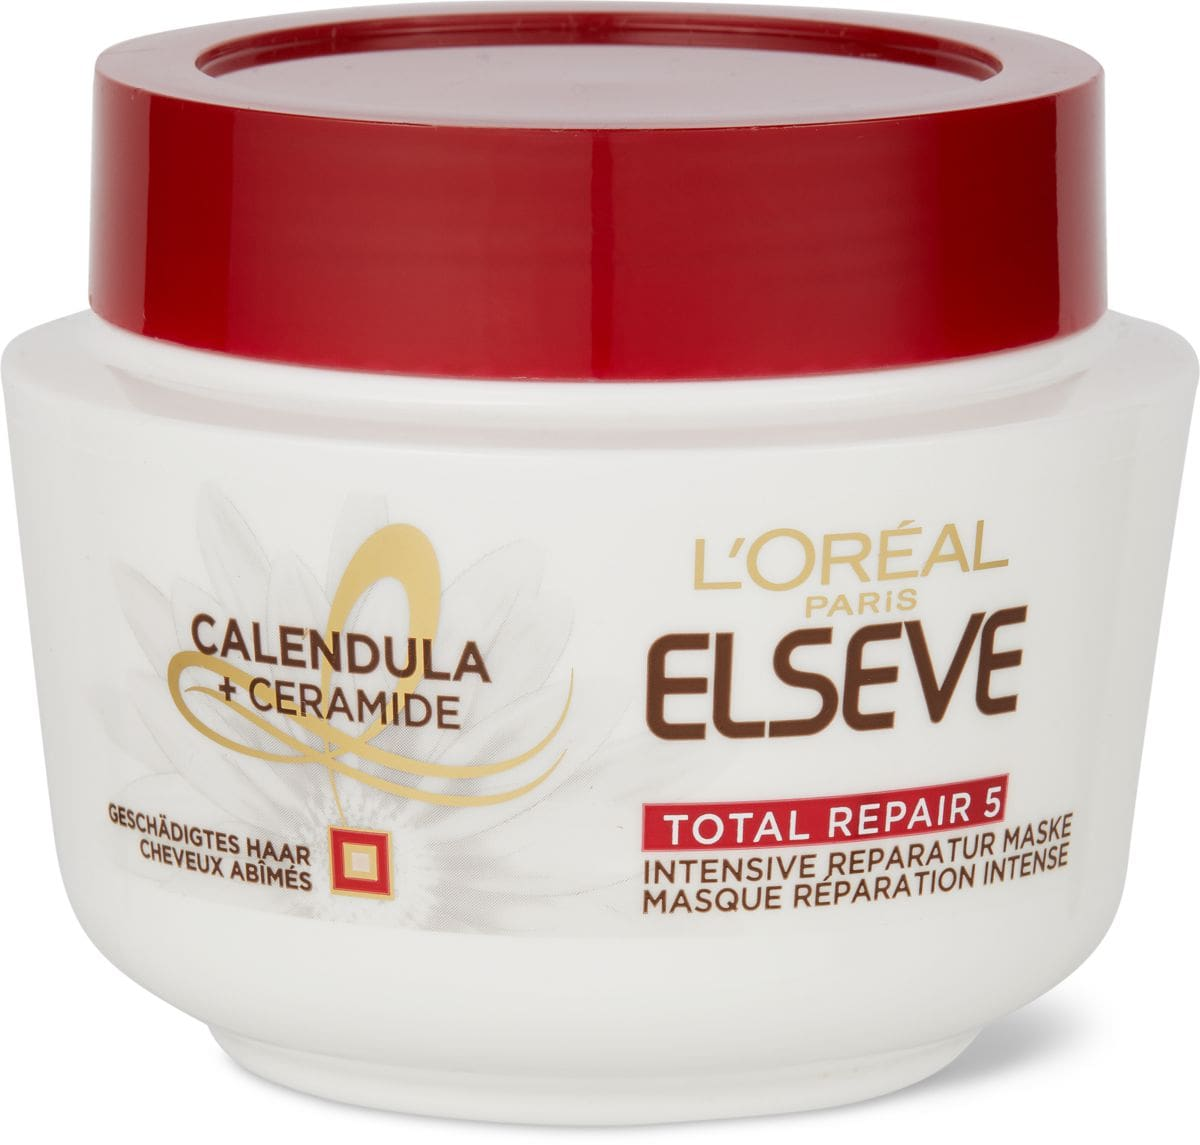 L'Oréal Elseve Masque Total Repair 5